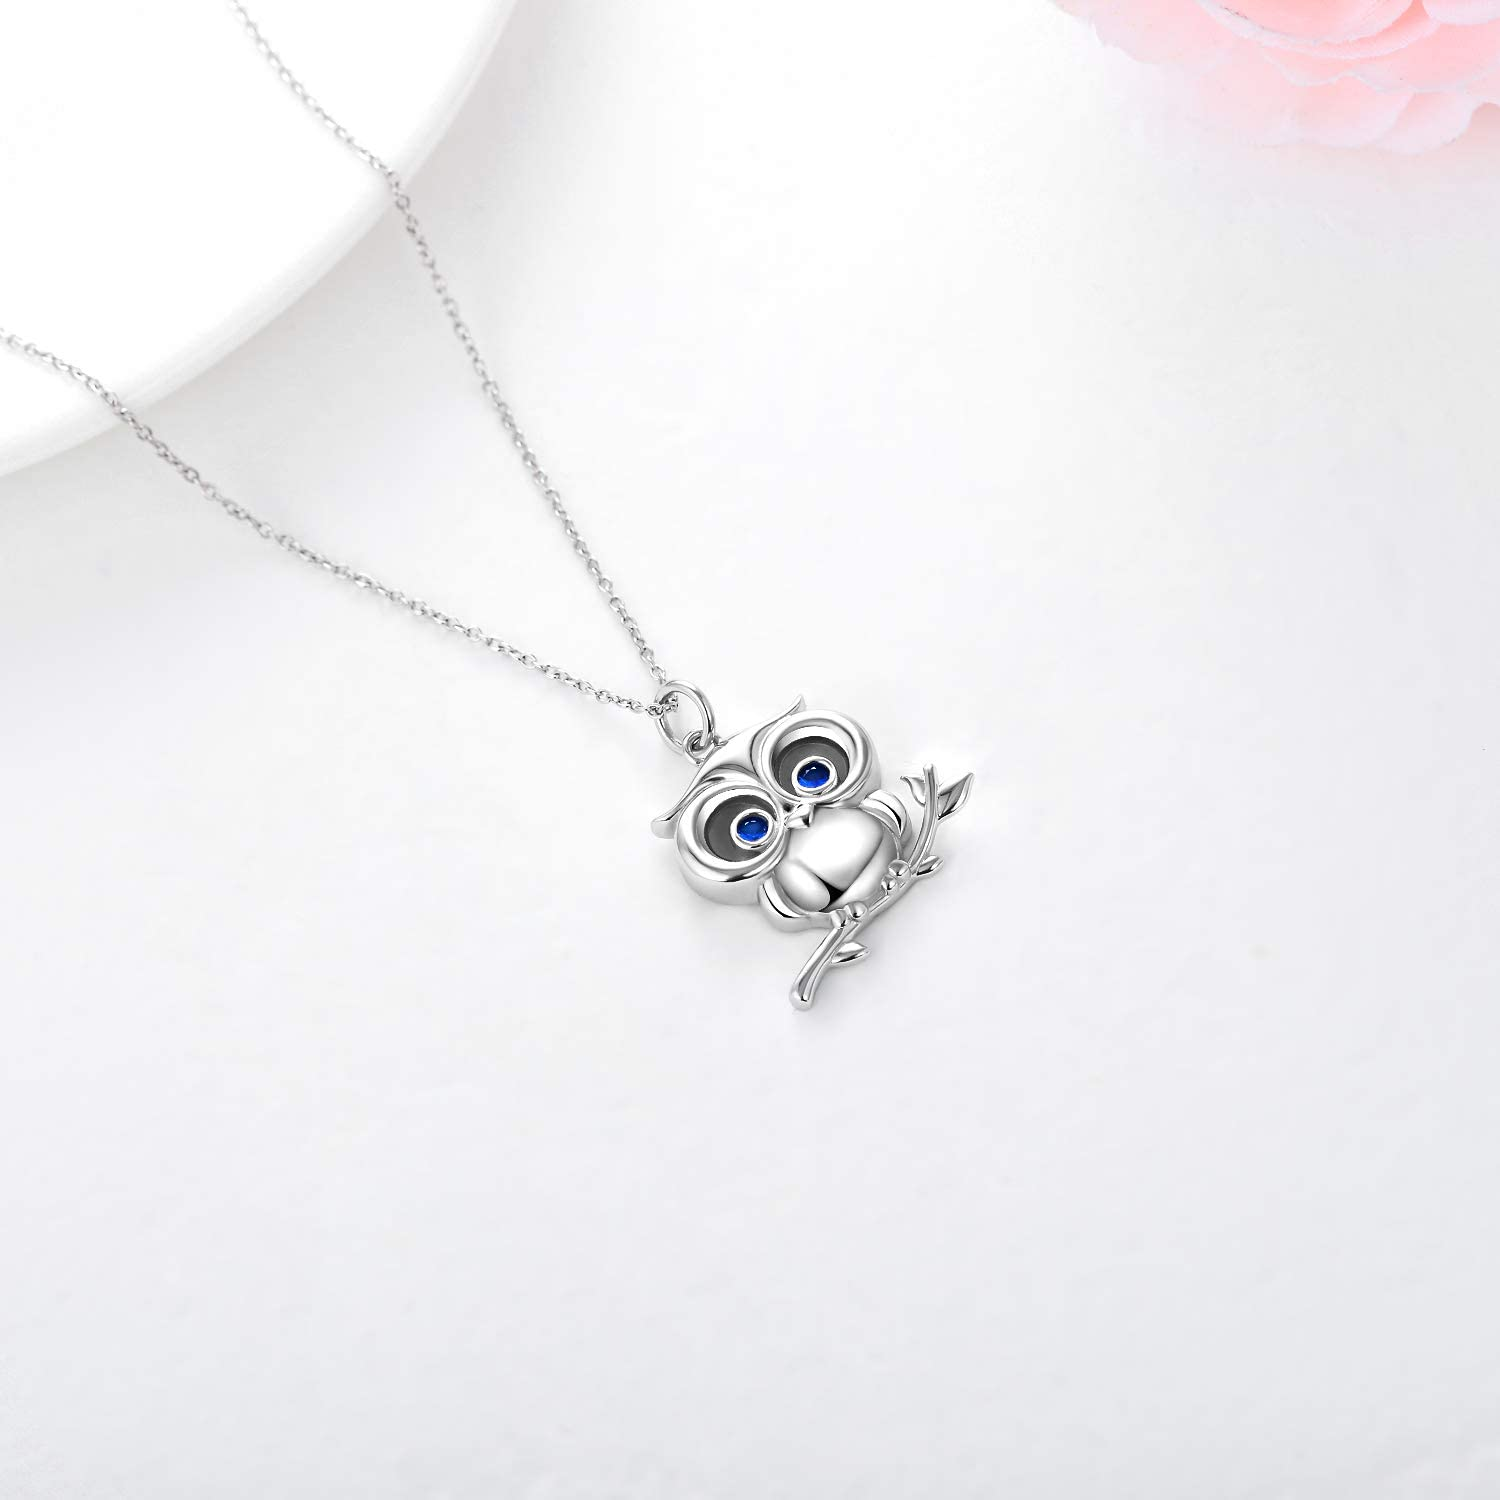 Small Owl Necklace Cottagecore Owl Lovers Gift Dainty Owl Always Love You Pun Necklace Gold Heart Bird Lovers Gift Animal Lover Jewelry